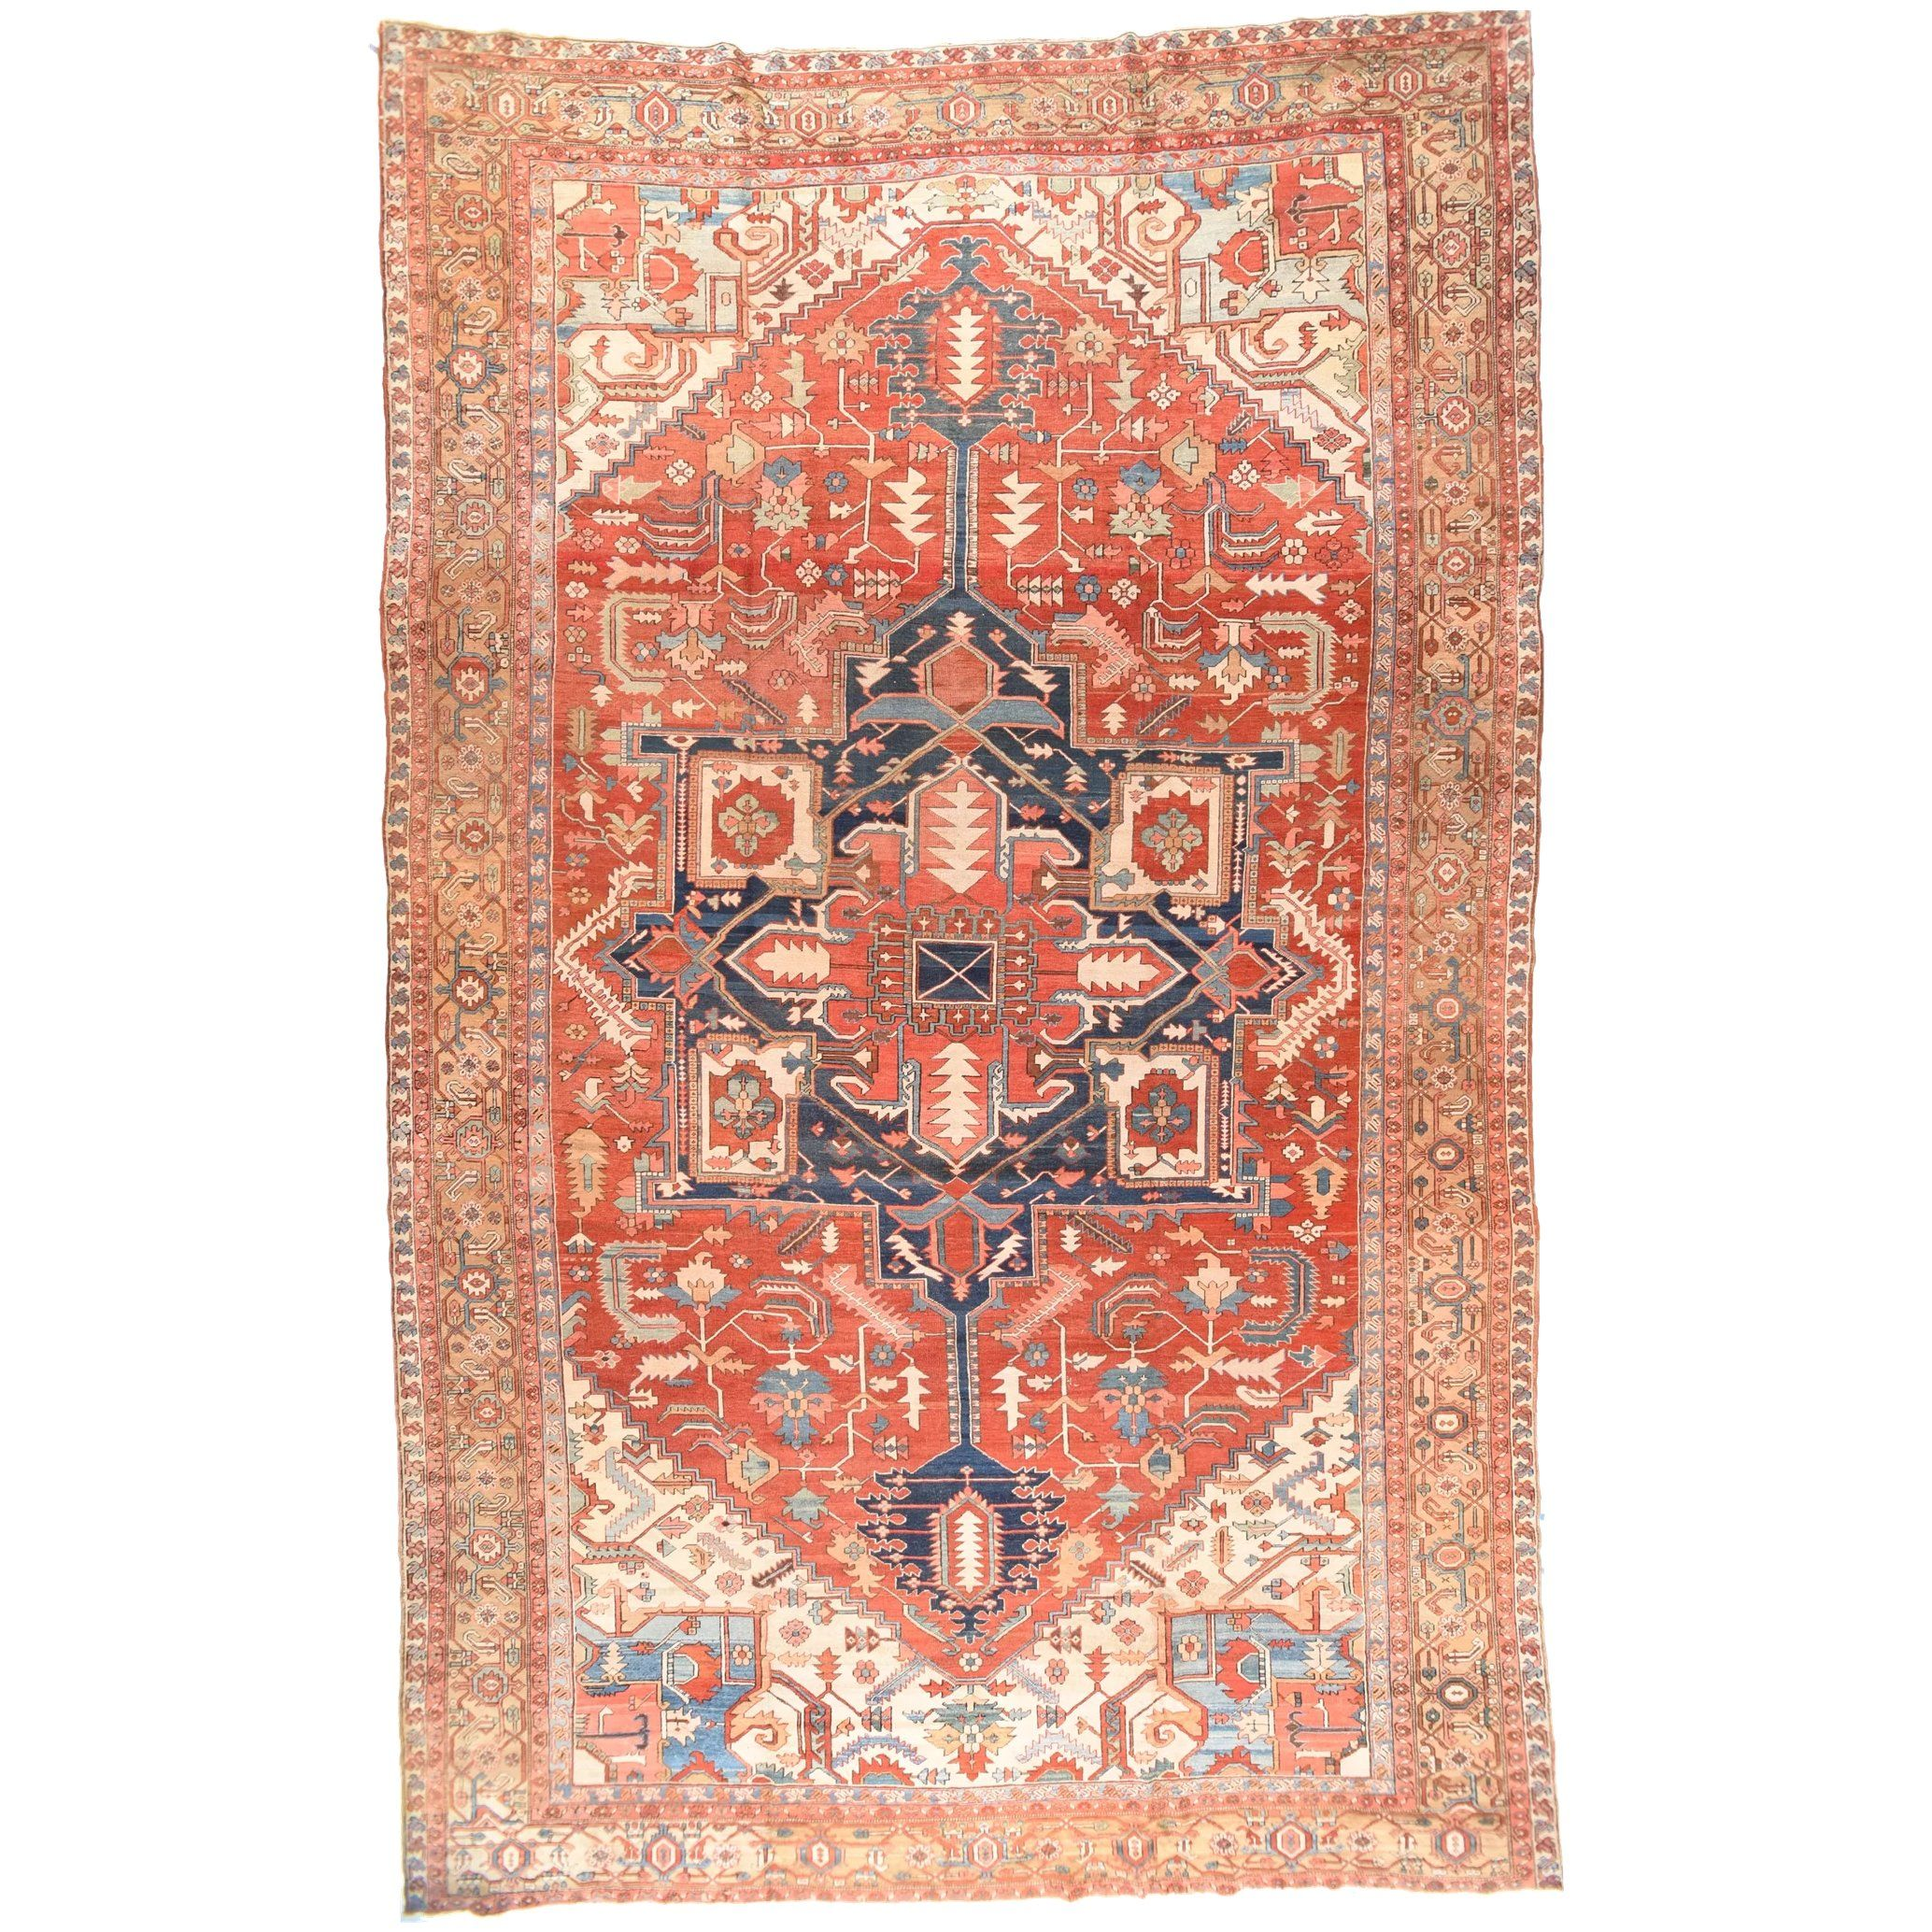 Antique Serapi Persian Rug Circa 1890 Persian Rug Rugs Rugs On Carpet